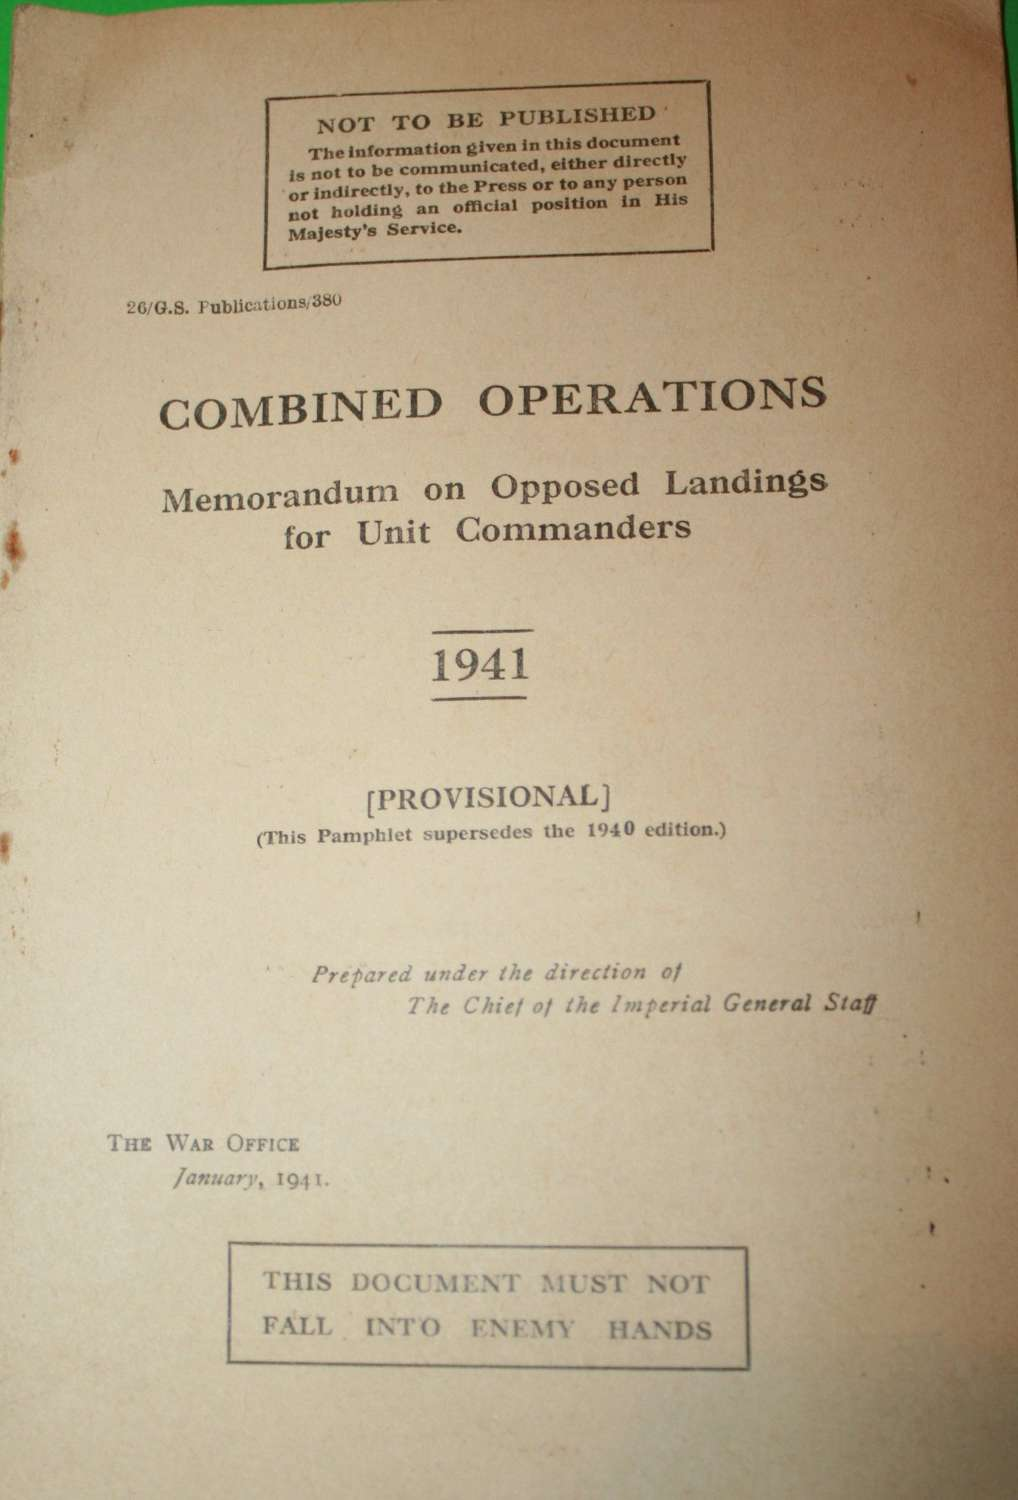 COMBINED OPERATIONS MEMORANDUM ON OPPOSED LANDINGS